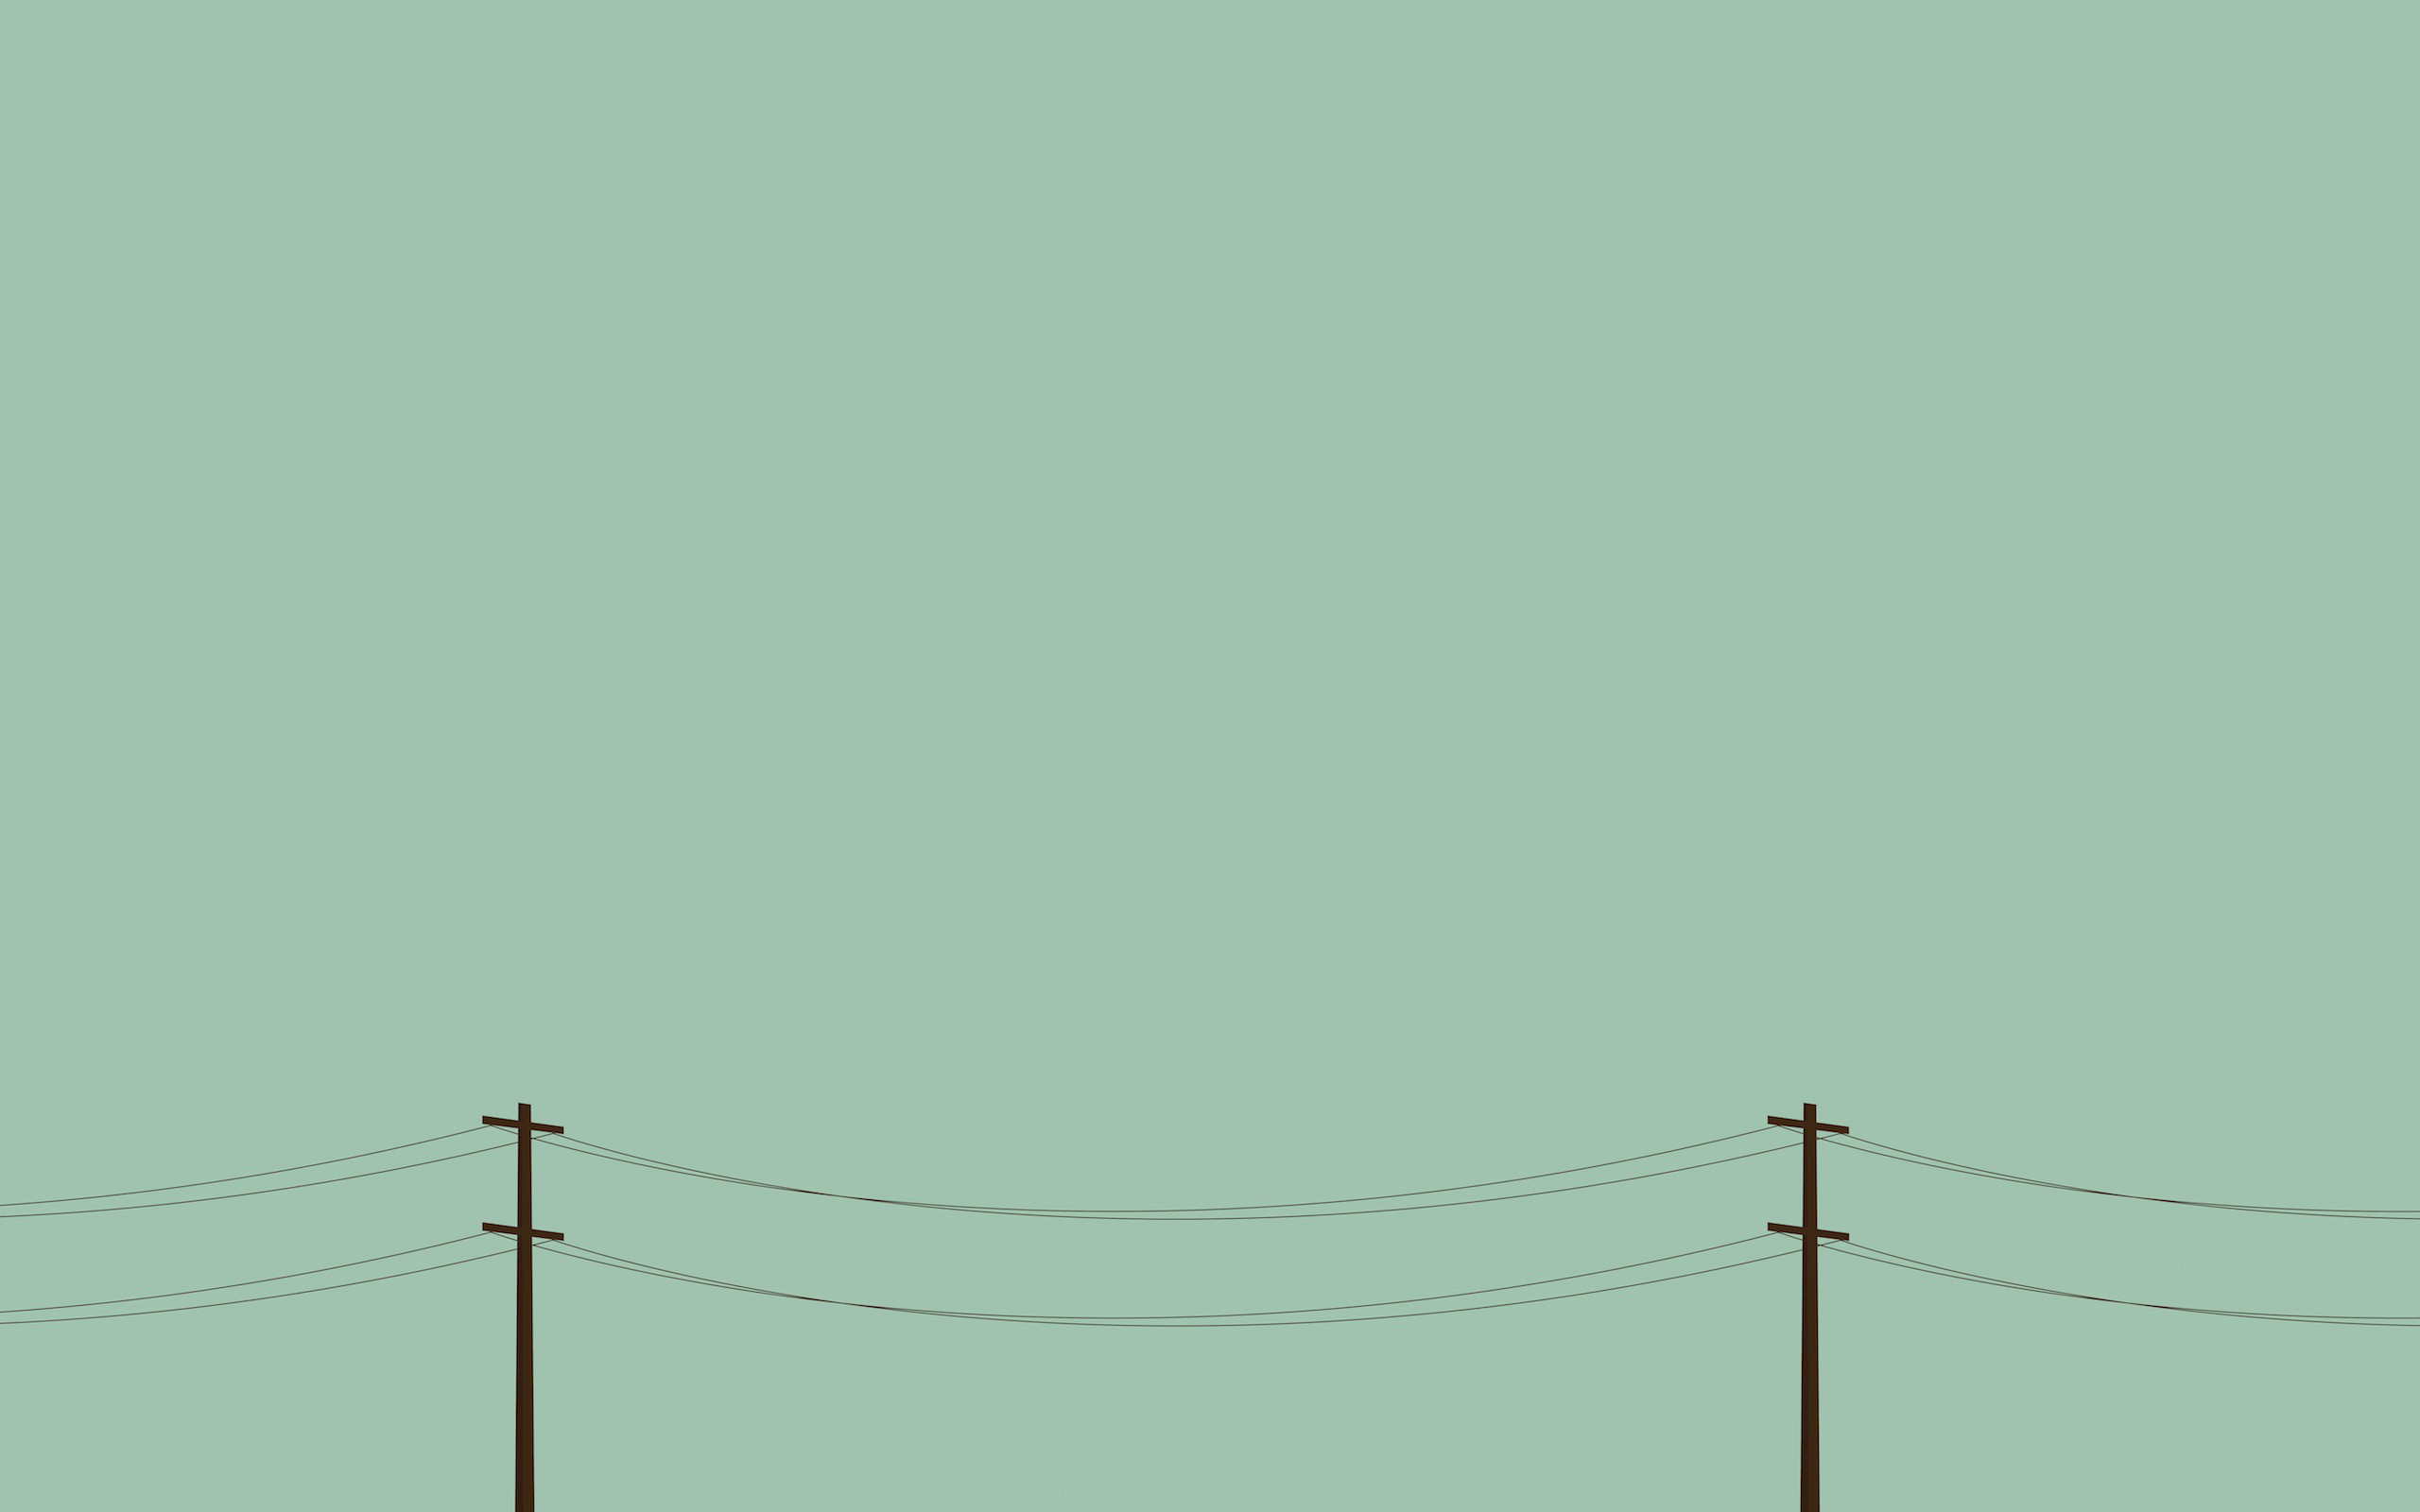 813546 gorgerous background simple tumblr 2560x1600 for android